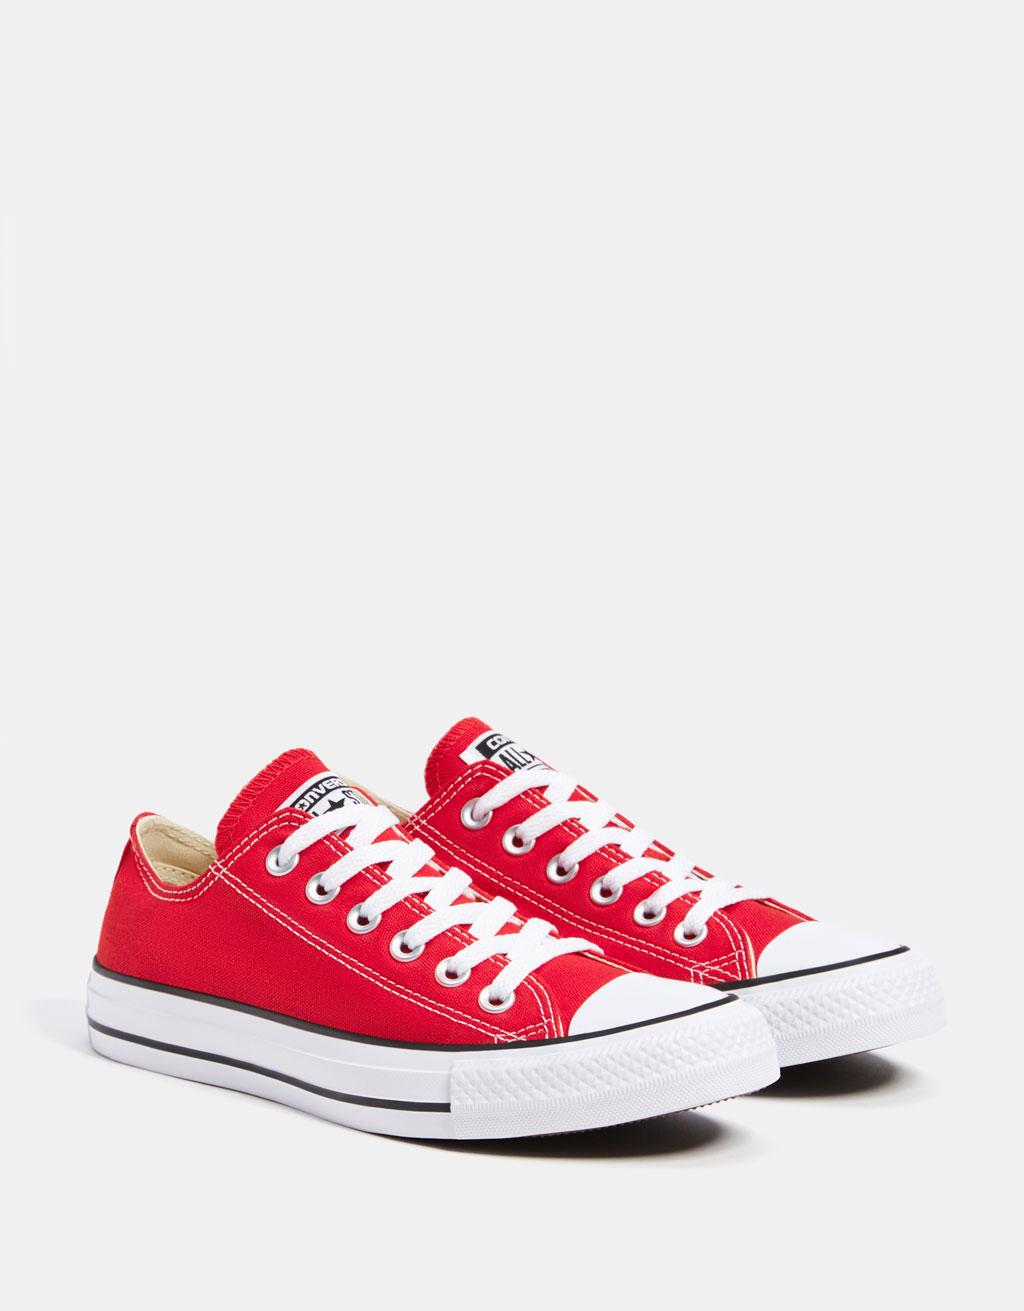 Zapatilak, CONVERSE CHUCK TAYLOR ALL STAR